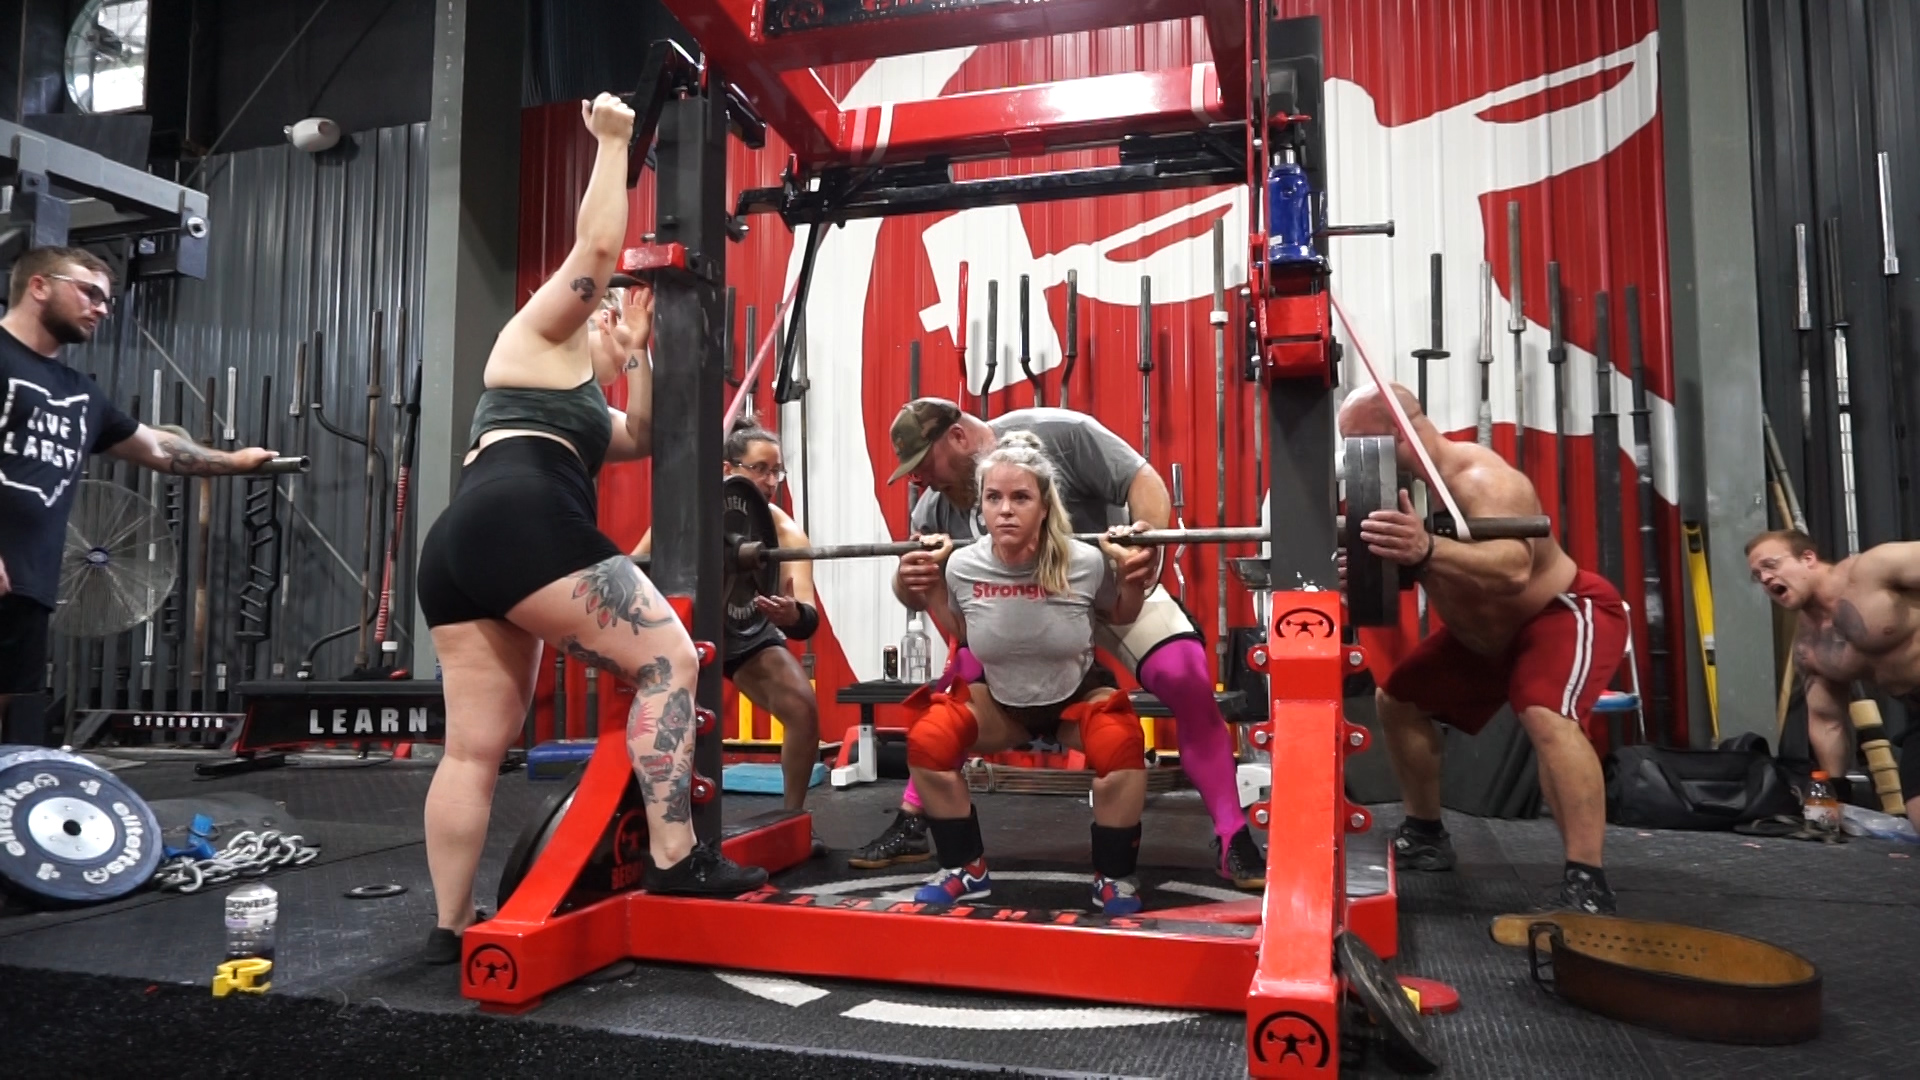 Training at EliteFTS Day Three - Squats